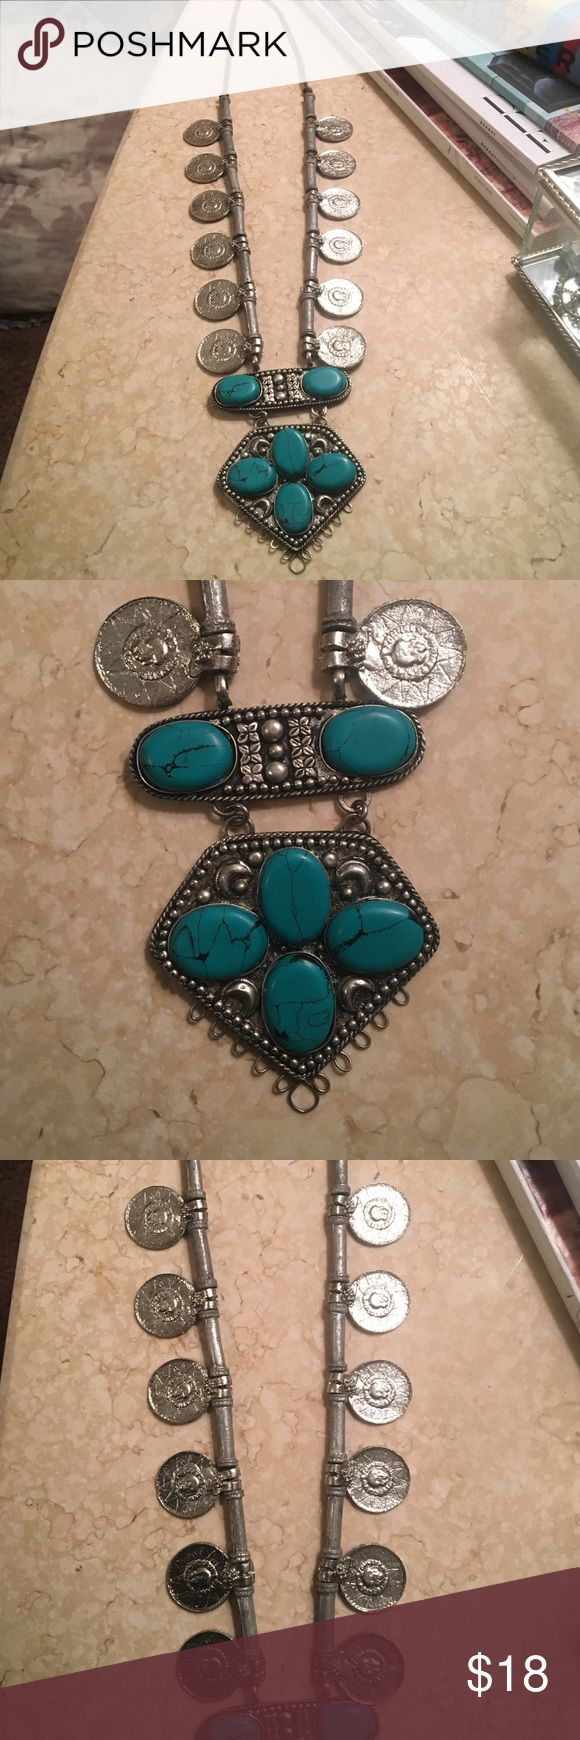 Coin Necklace Turquoise coin necklace, definitely a statement piece! Jewelry Necklaces